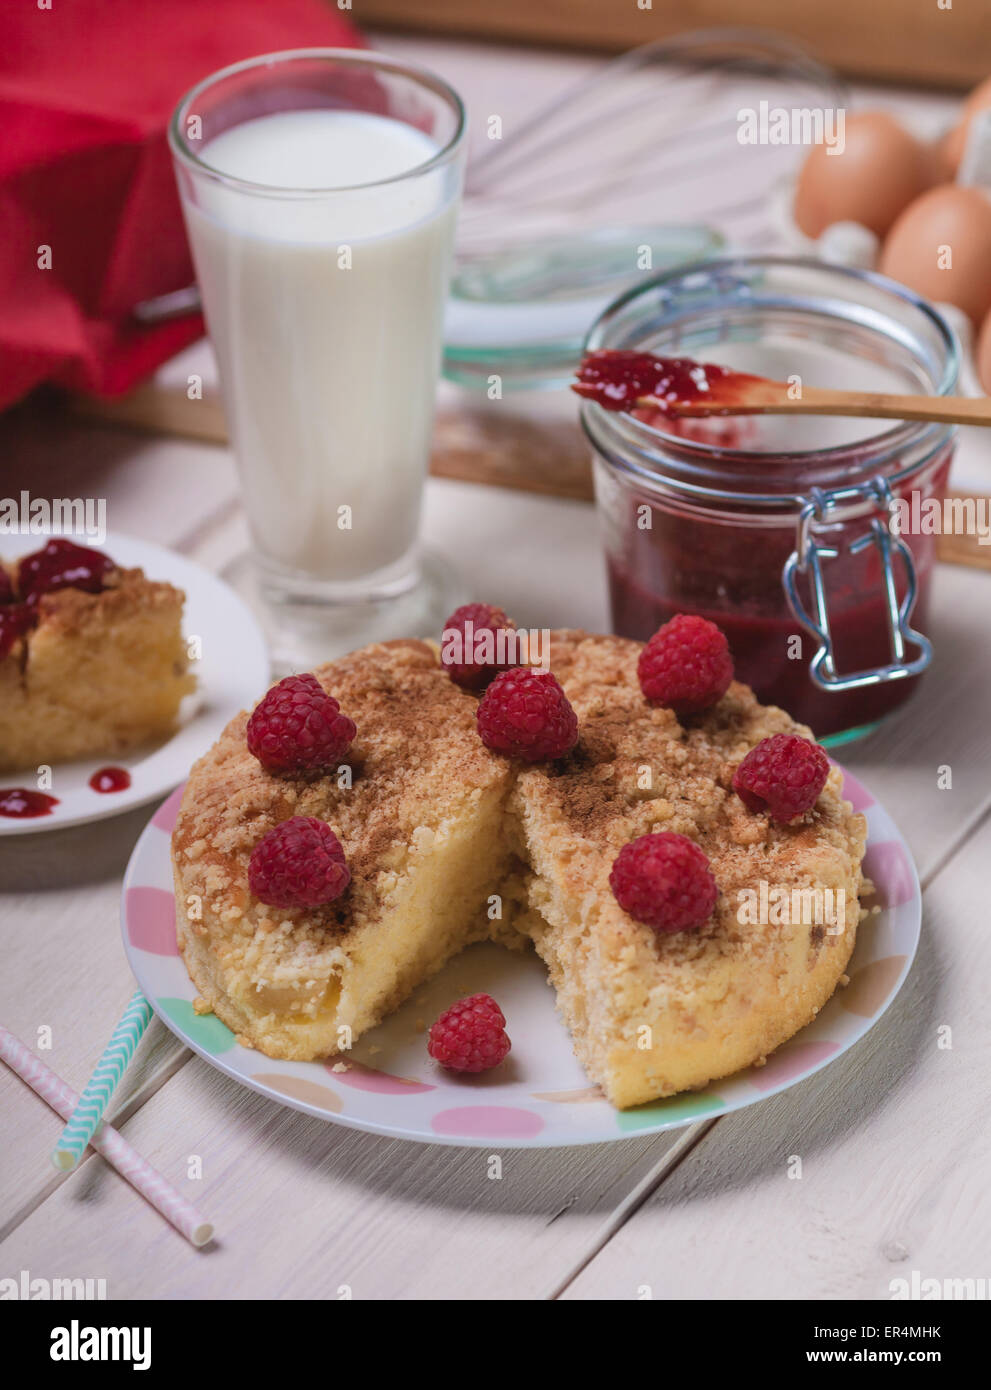 Rustic style of raspberries pie on wooden planks. Debica, Poland - Stock Image